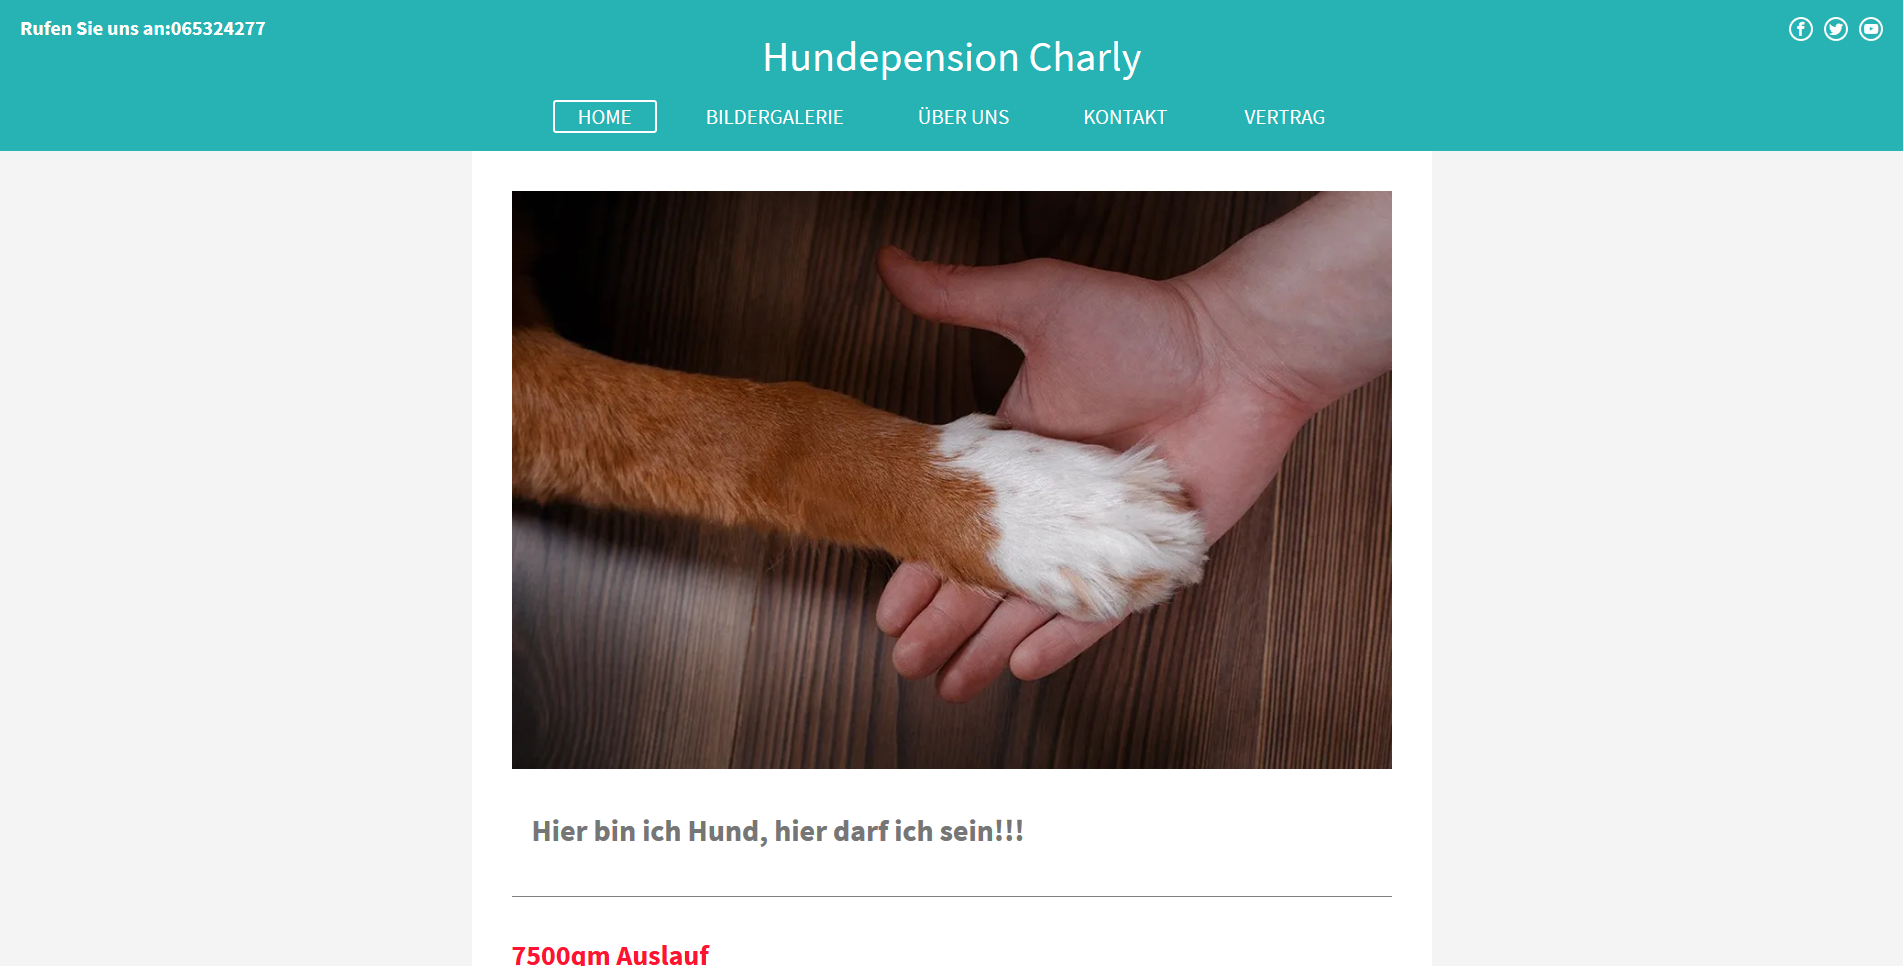 Hundepension Charly